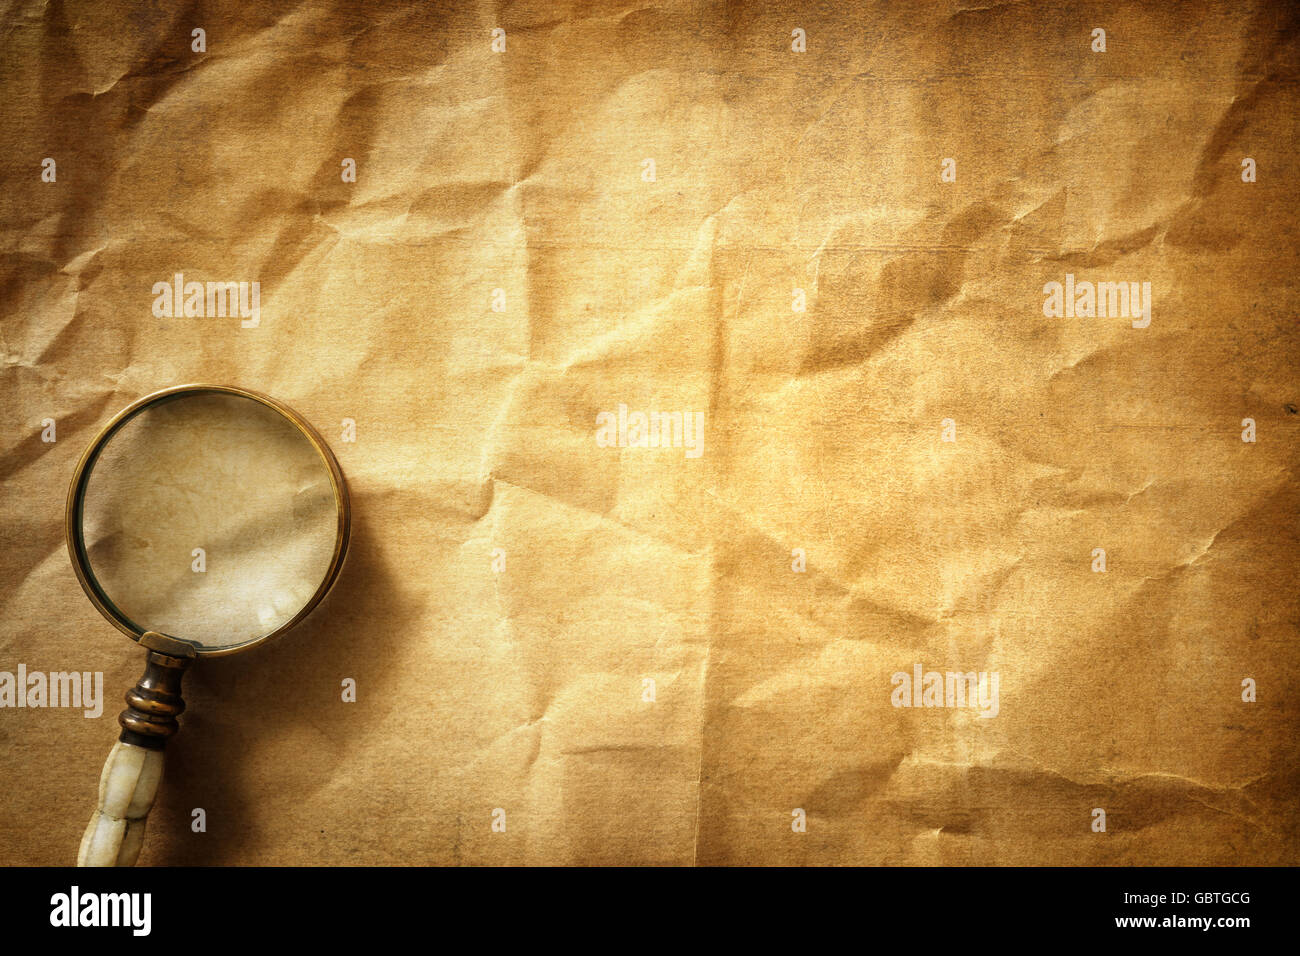 Vintage background with magnifying glass - Stock Image